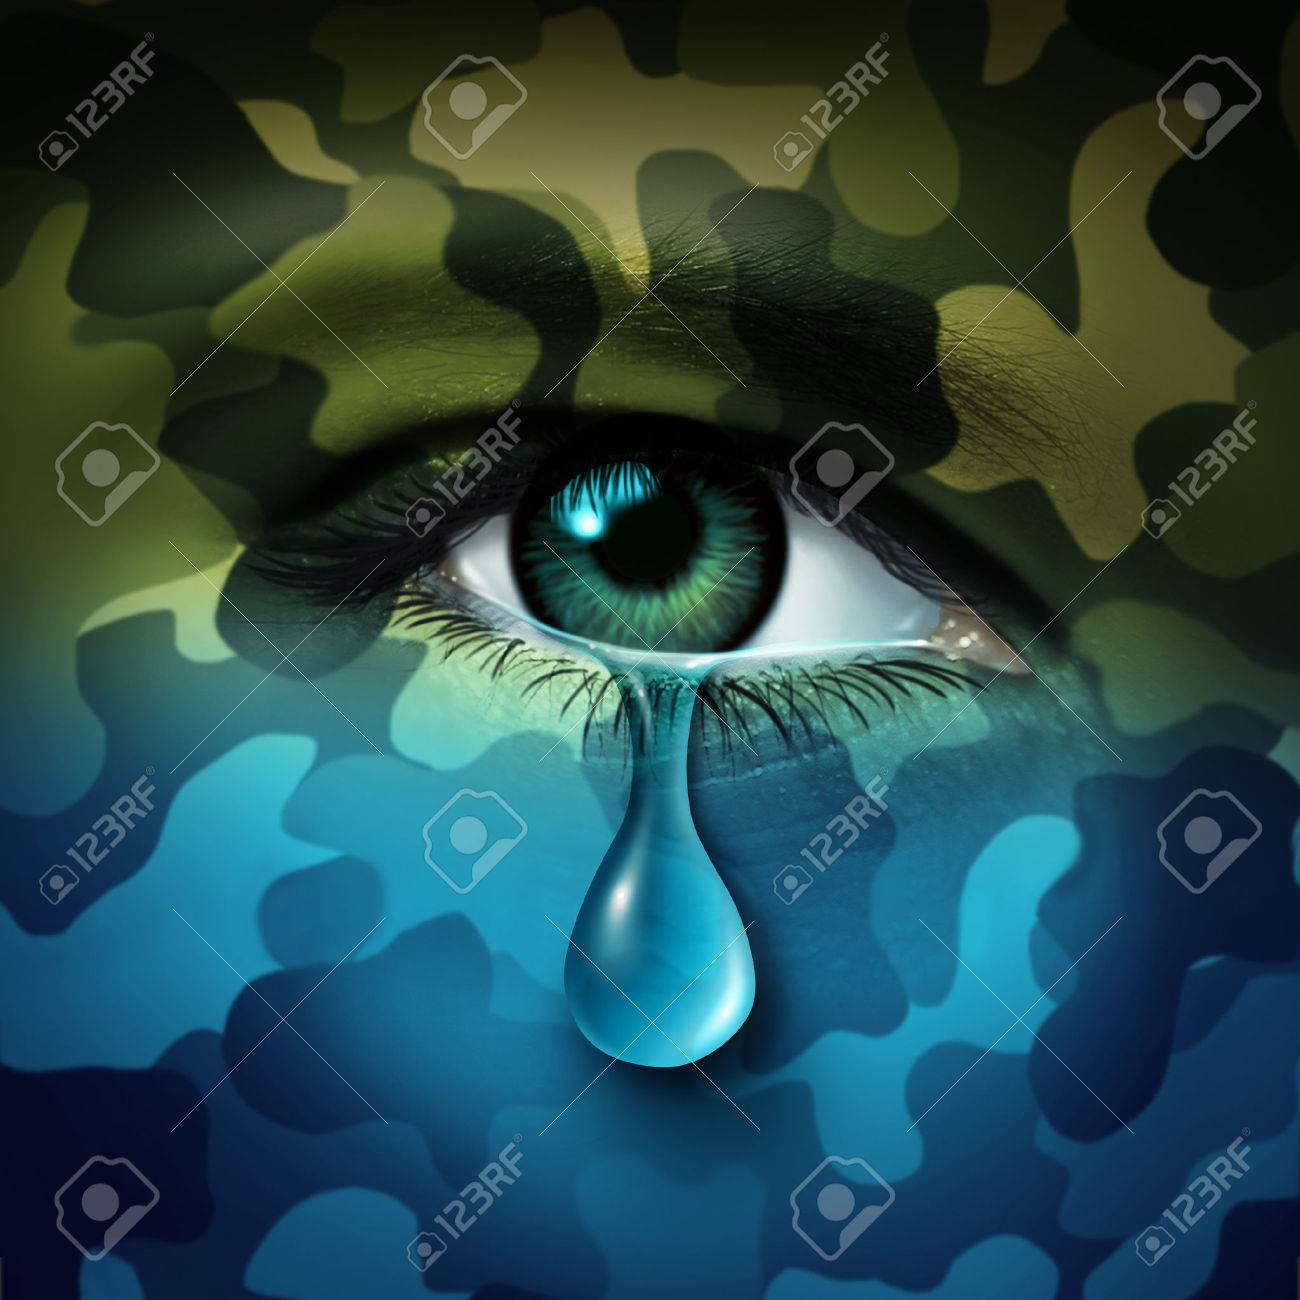 Military depression mental health concept and casualty of war symbol as a crying human eye tear with green camouflage transforming into a blue mood as a metaphor for veteran healthcare or combatant issues. - 54533129